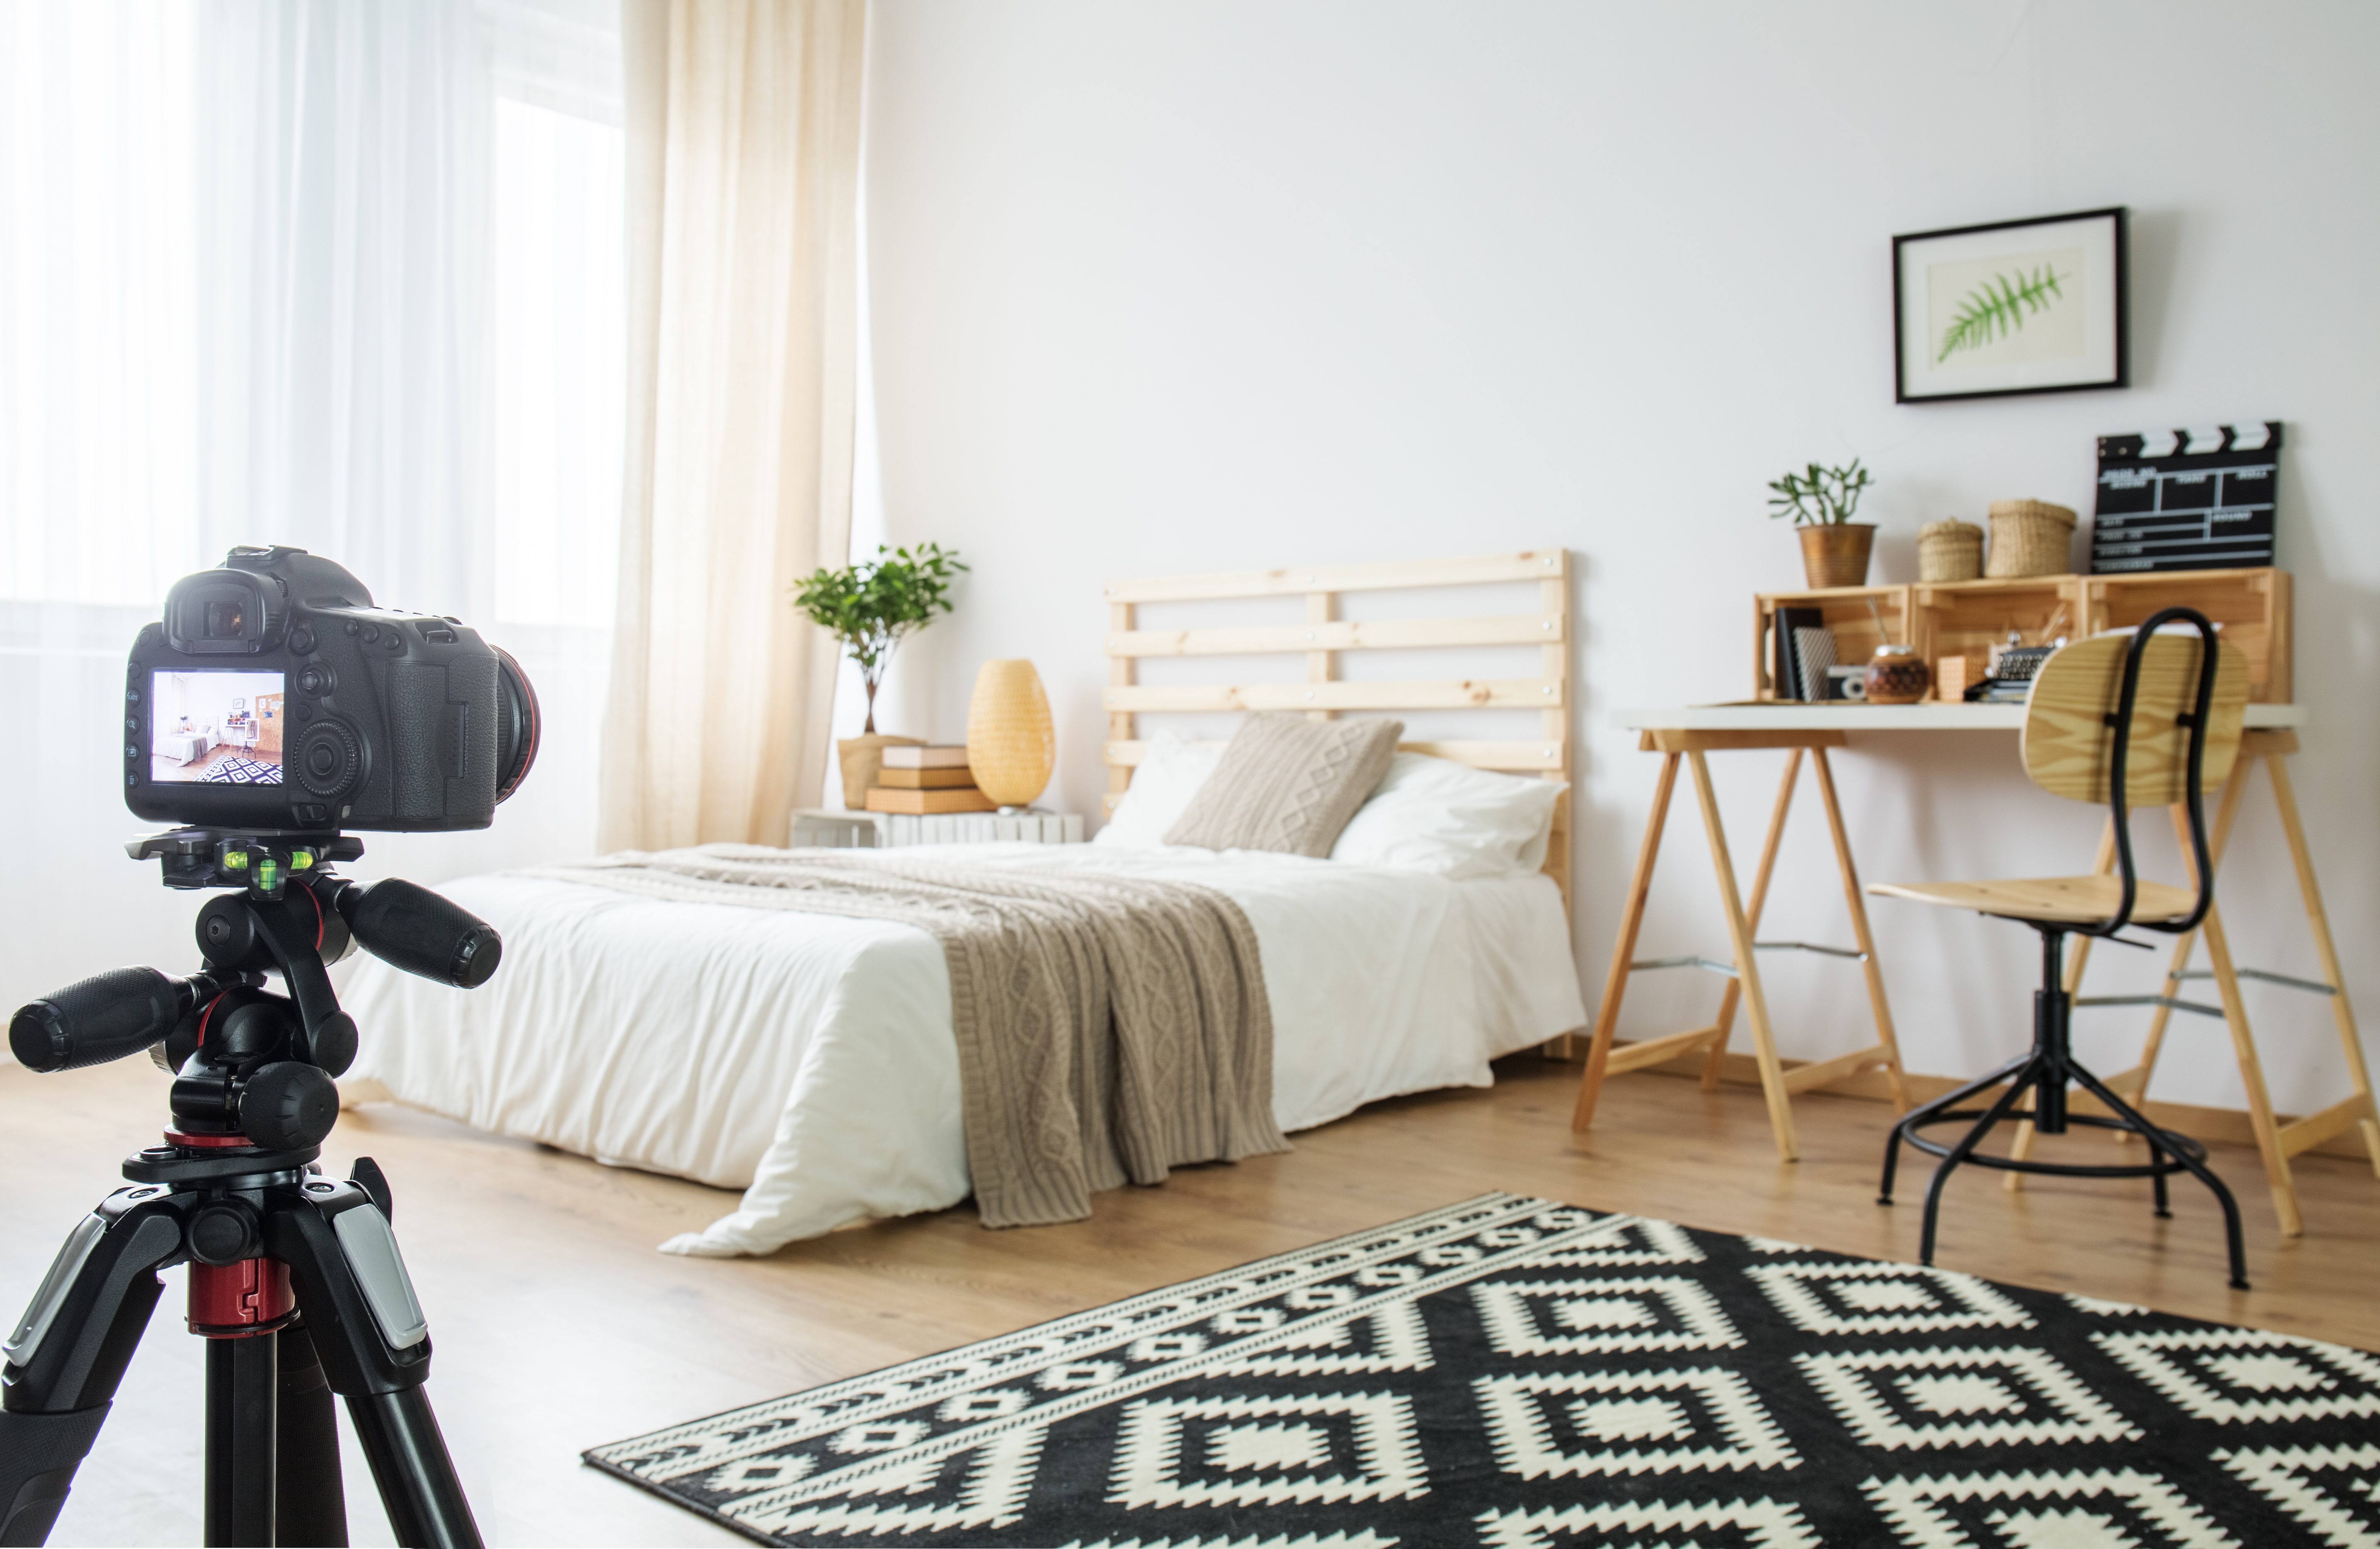 Real Estate Photography Salary How To Price Your Services